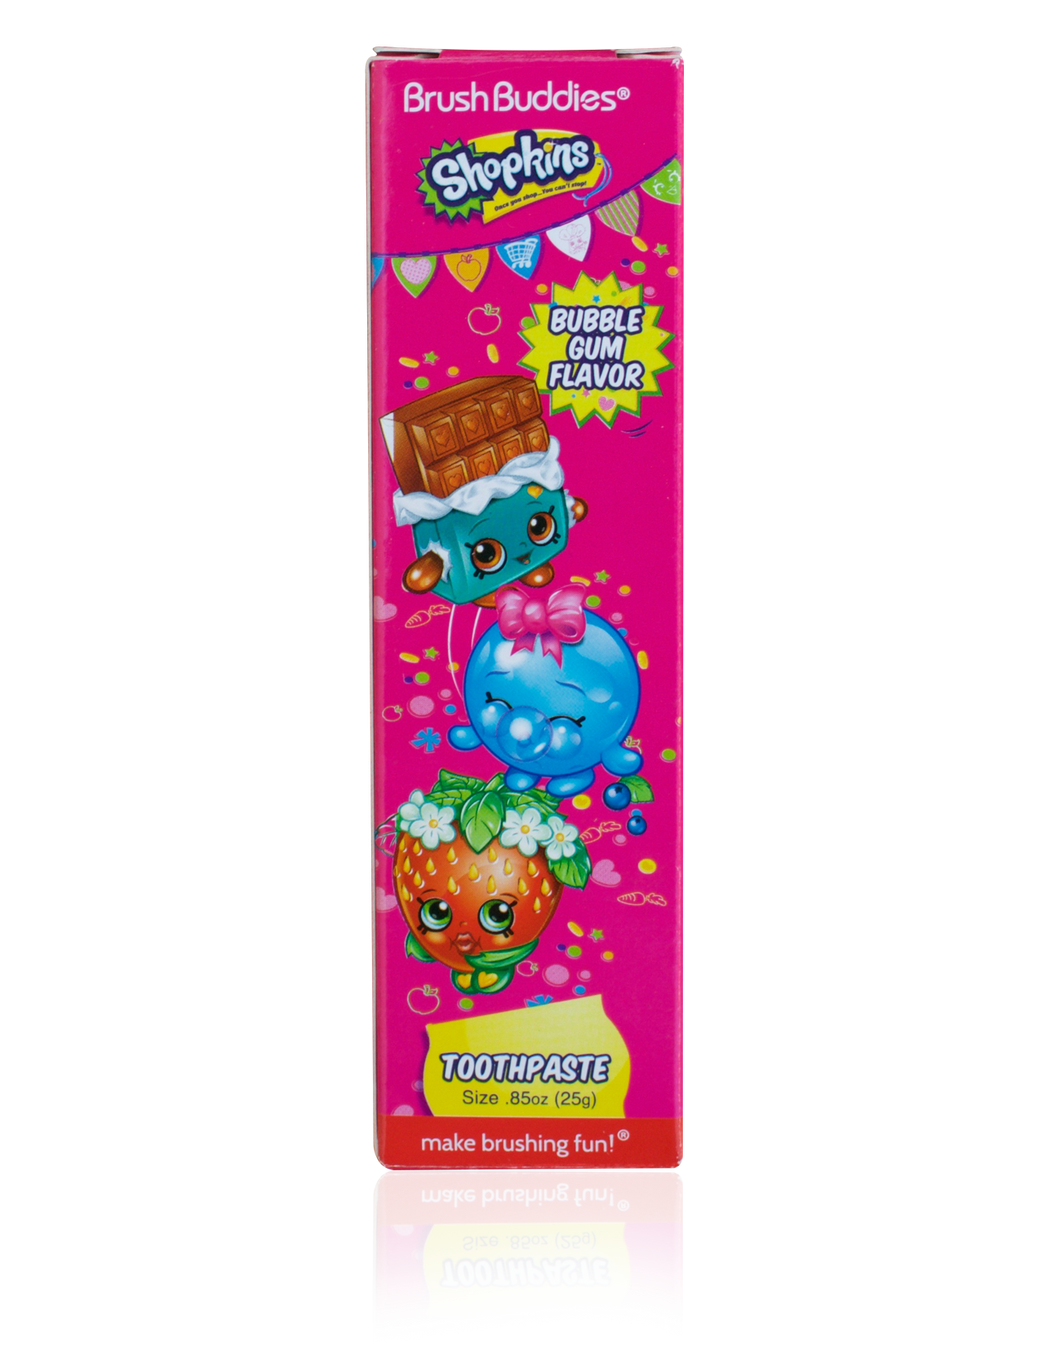 Brush Buddies Shopkins Bubble Gum Travel Toothpaste 0.85 oz